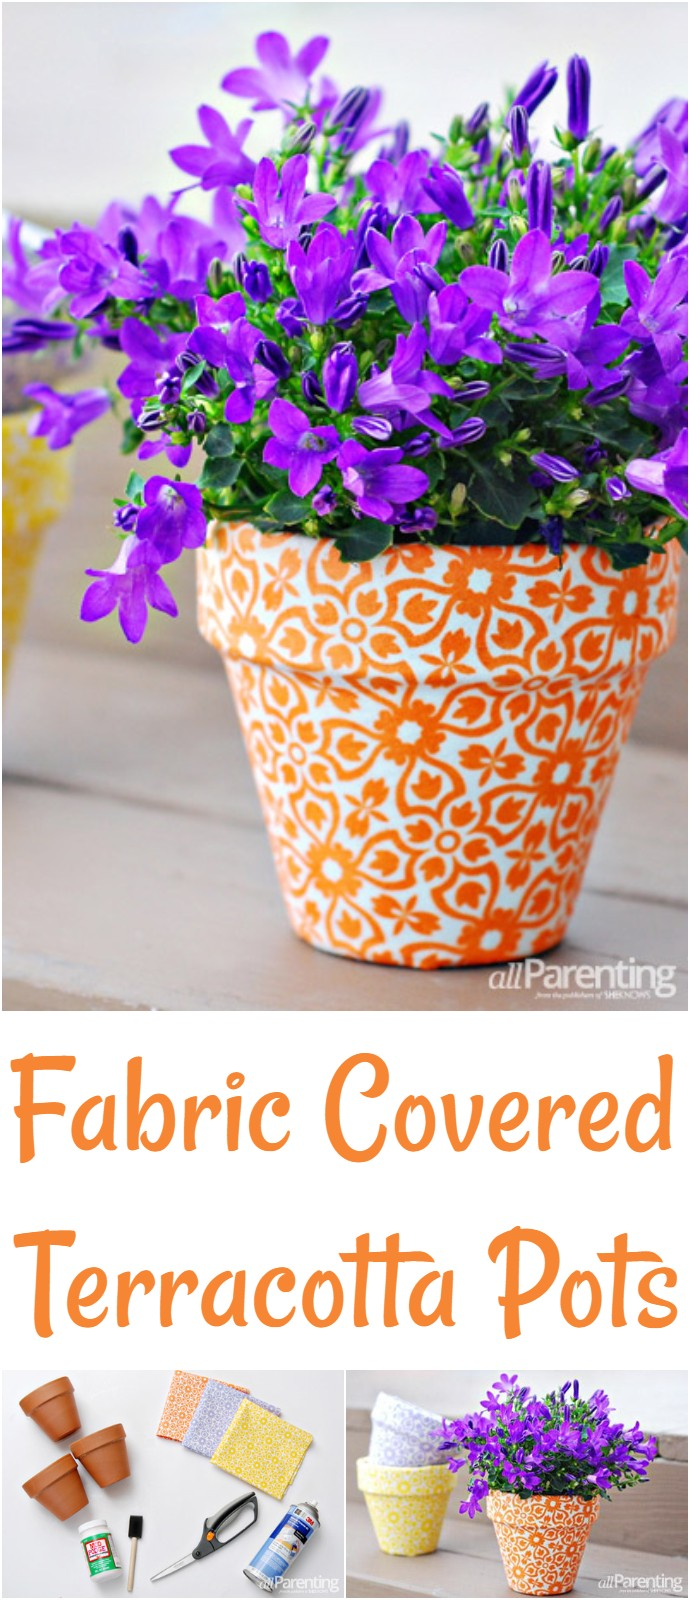 Fabric Covered Terracotta Pots